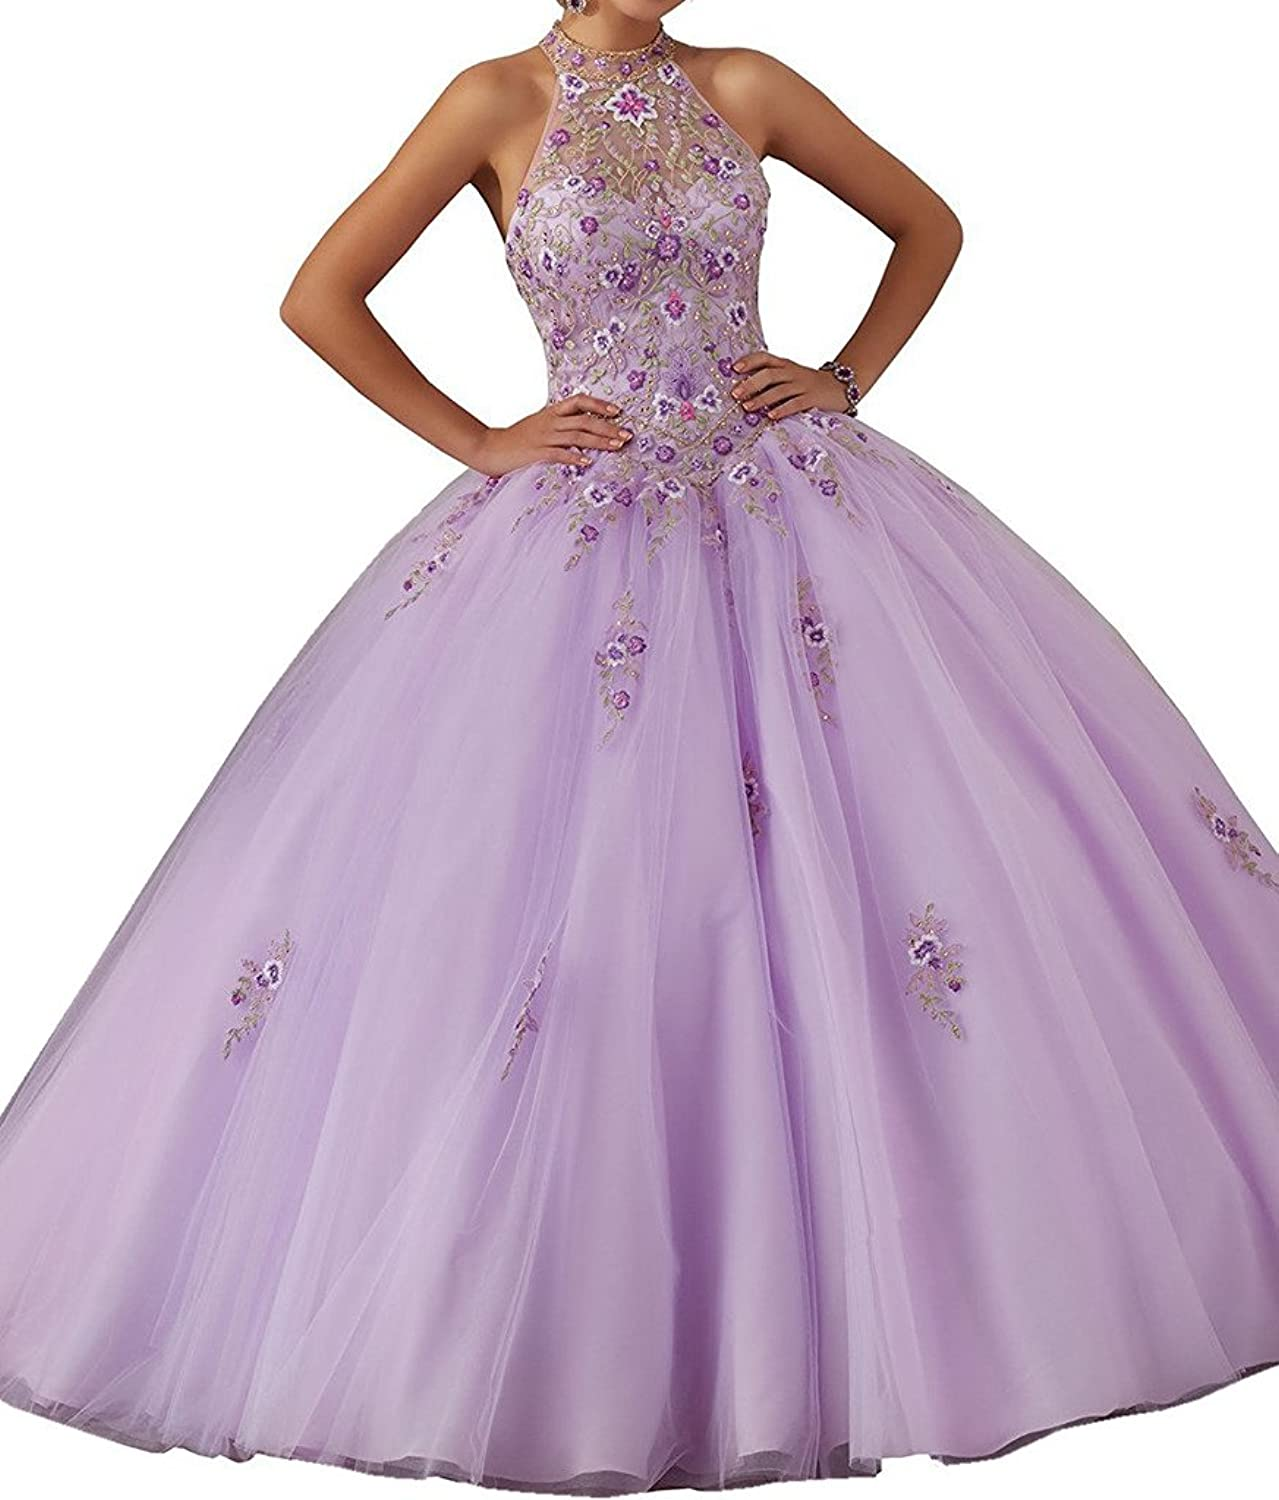 Engerla Women's High Neck Sleeveless Embroidery Floral Quinceanera Prom Gowns